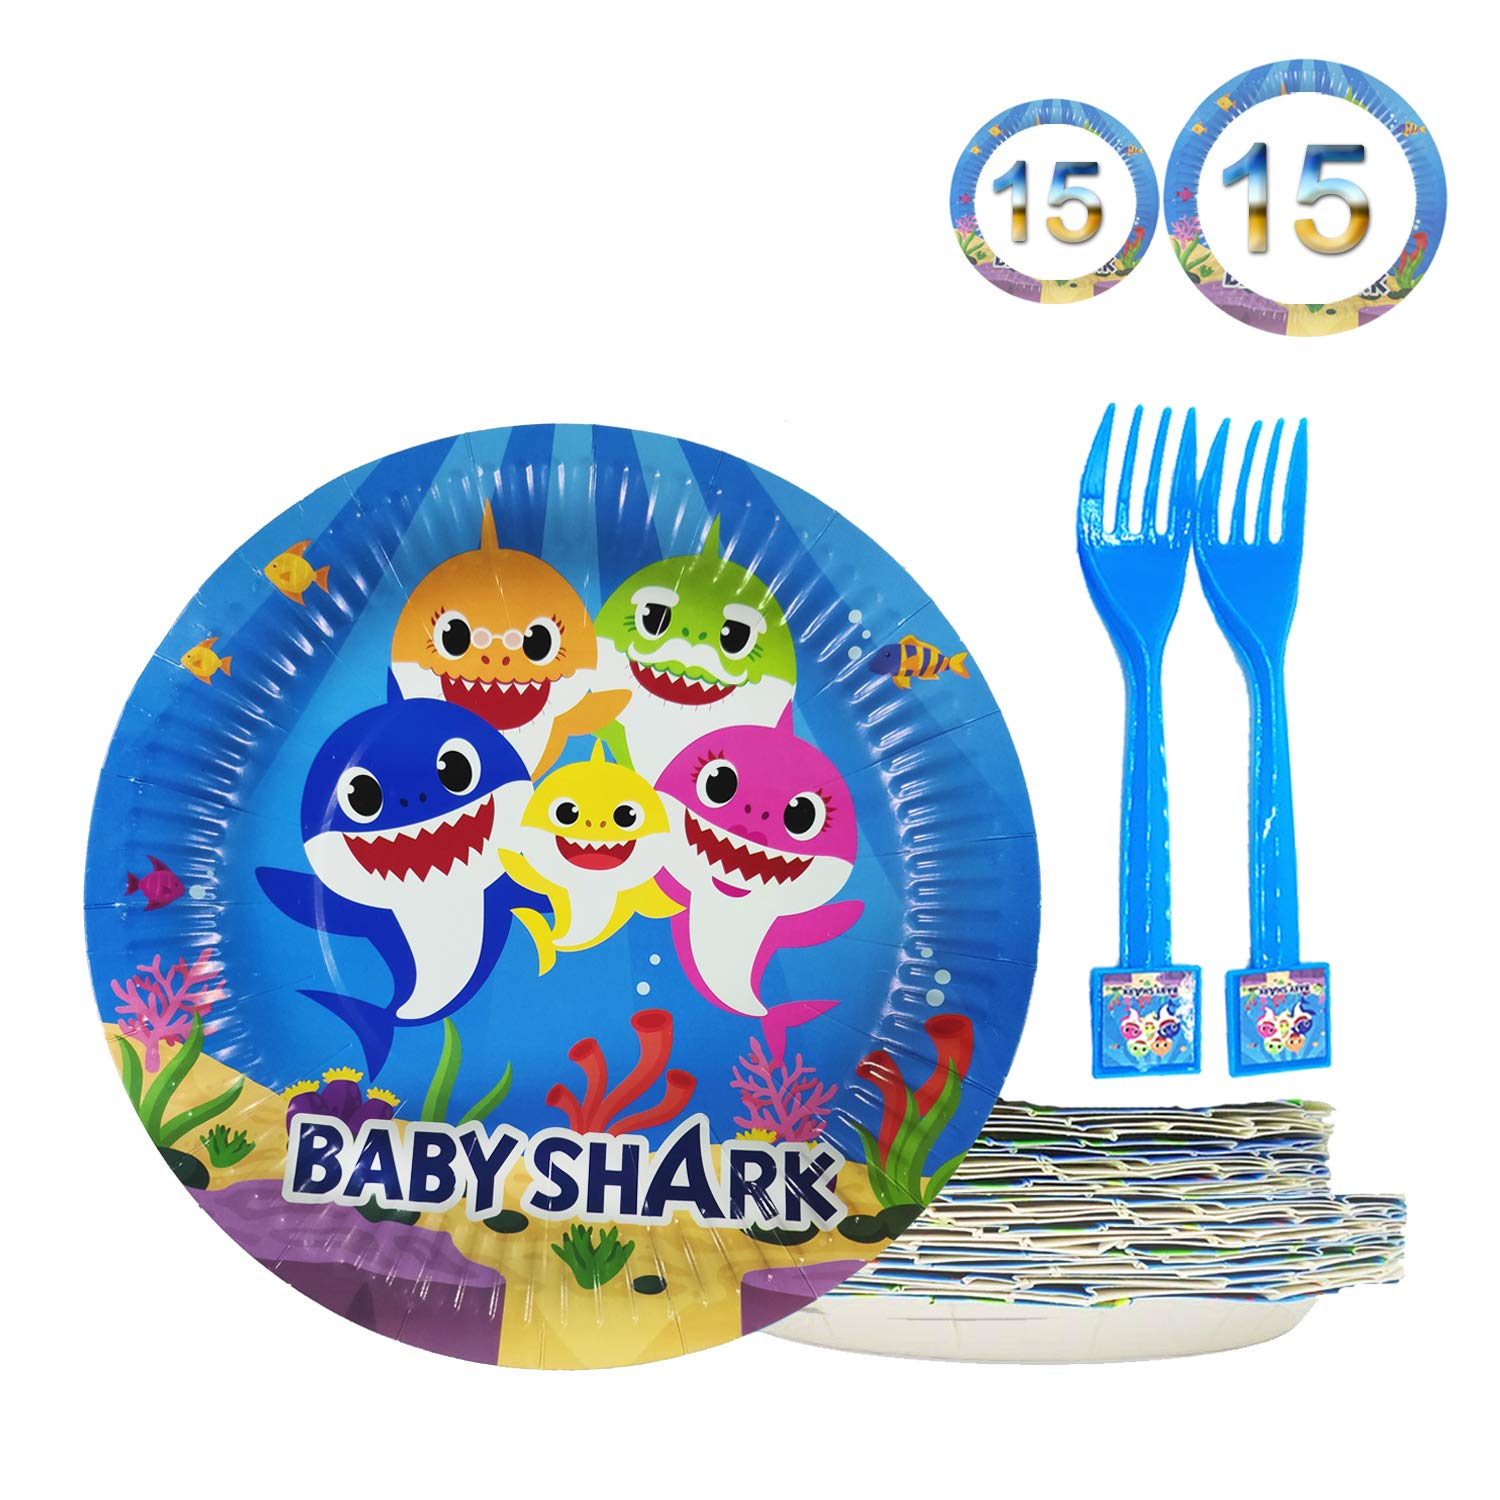 45 Baby Cute Shark Party Dessert Set, Birthday Party Plates, 15pcs 9 Inch + 15pcs 7 Inch Cake paper Plates, 15 pcs shark forks - Birthady Party Supplies for Shark Party Tableware Doo Doo Decorations